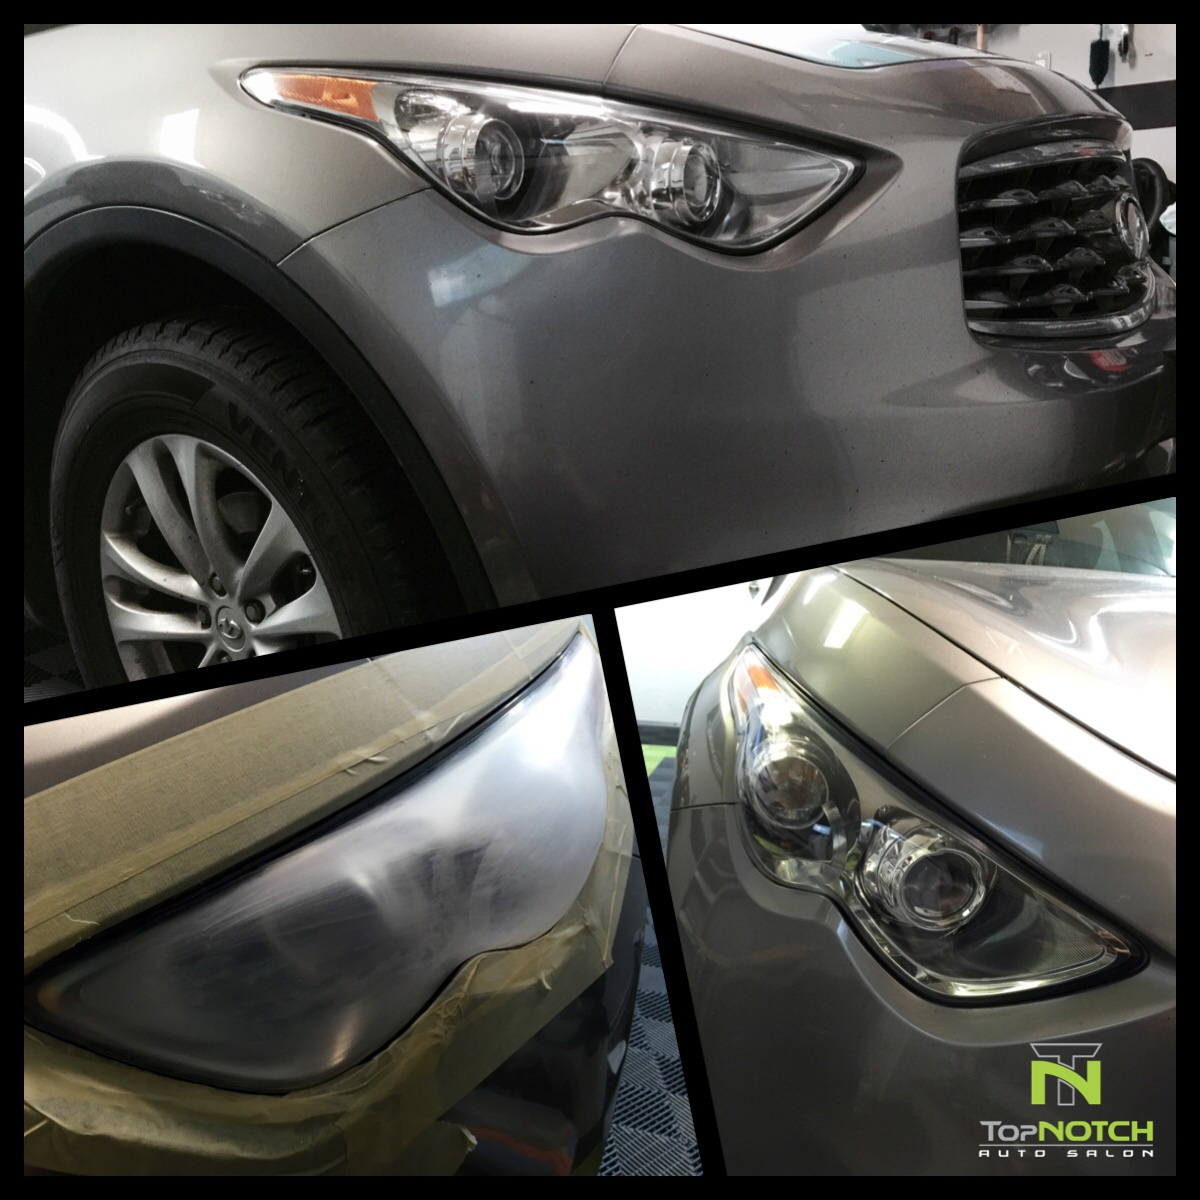 infinity fx35 headlight restoration - Top Notch Auto Salon